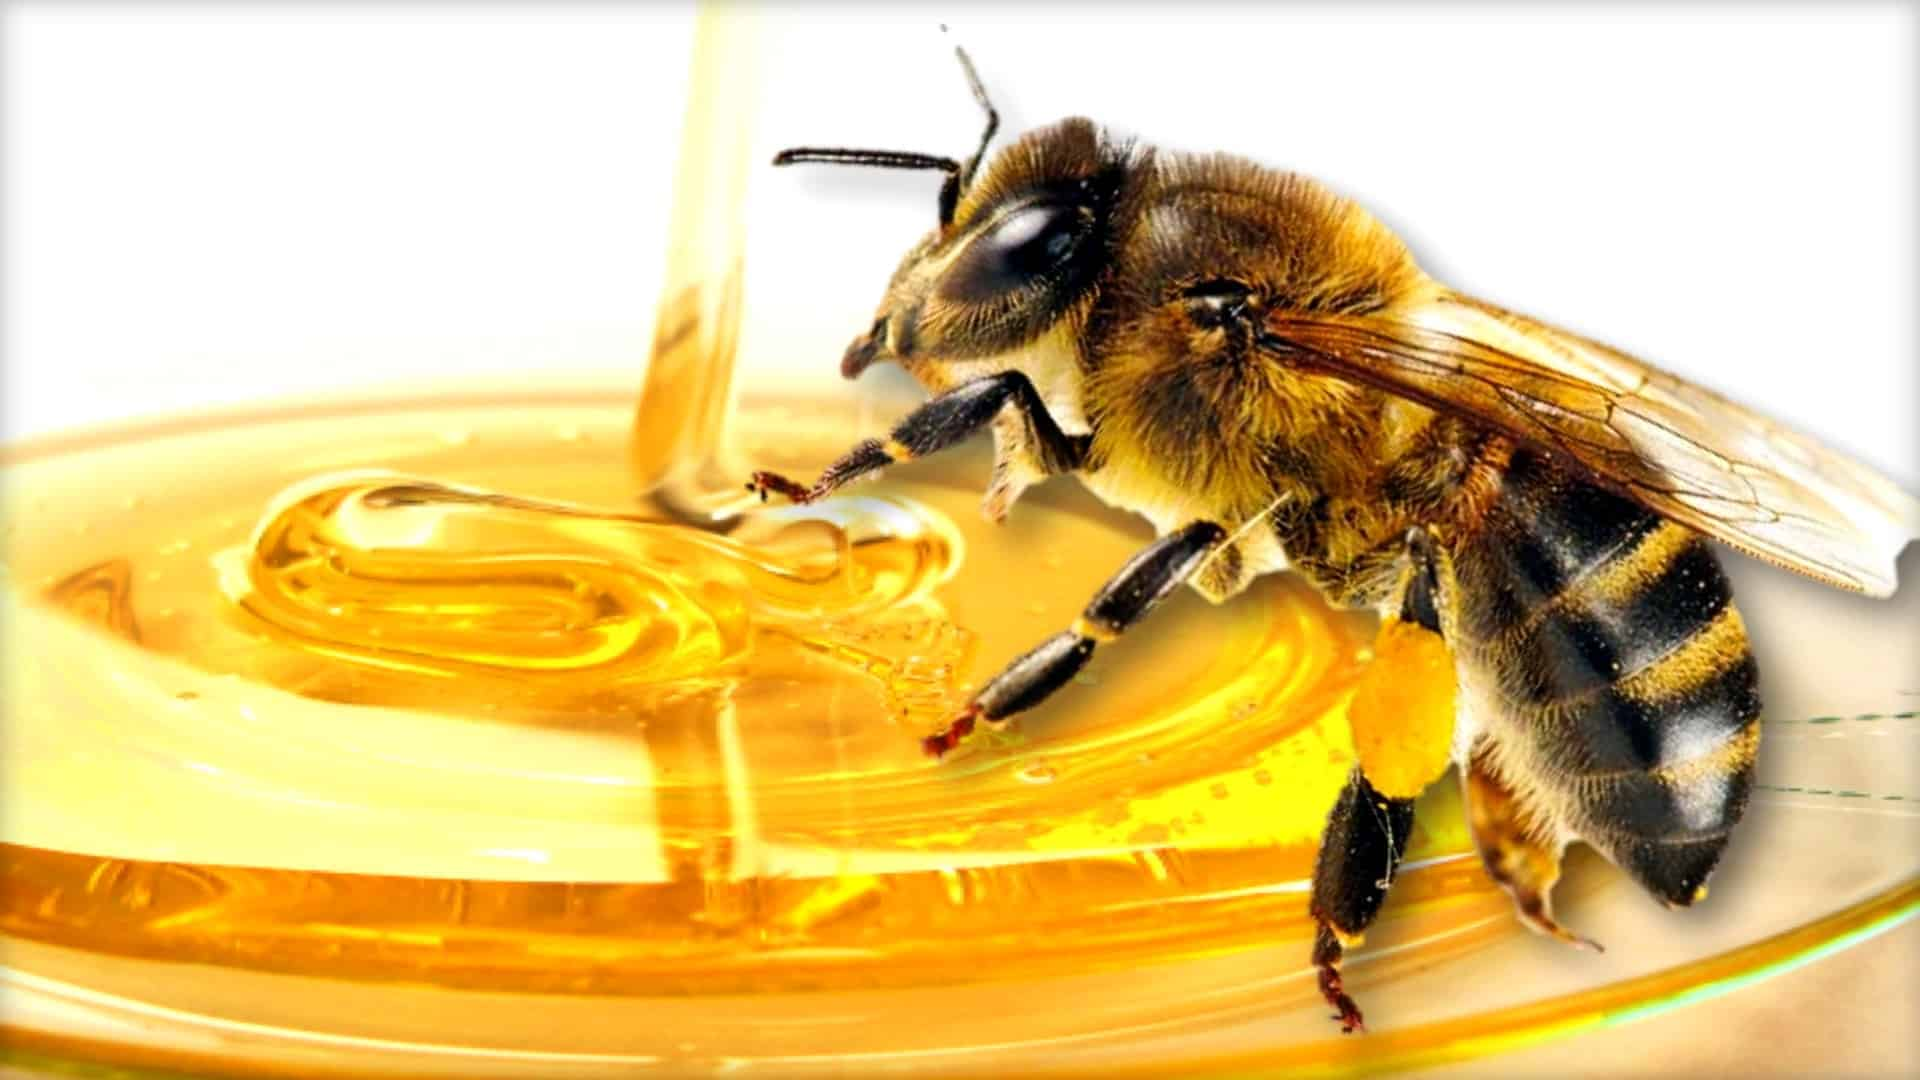 The image shows a close up of a honeybee as if in the process of eating honey.